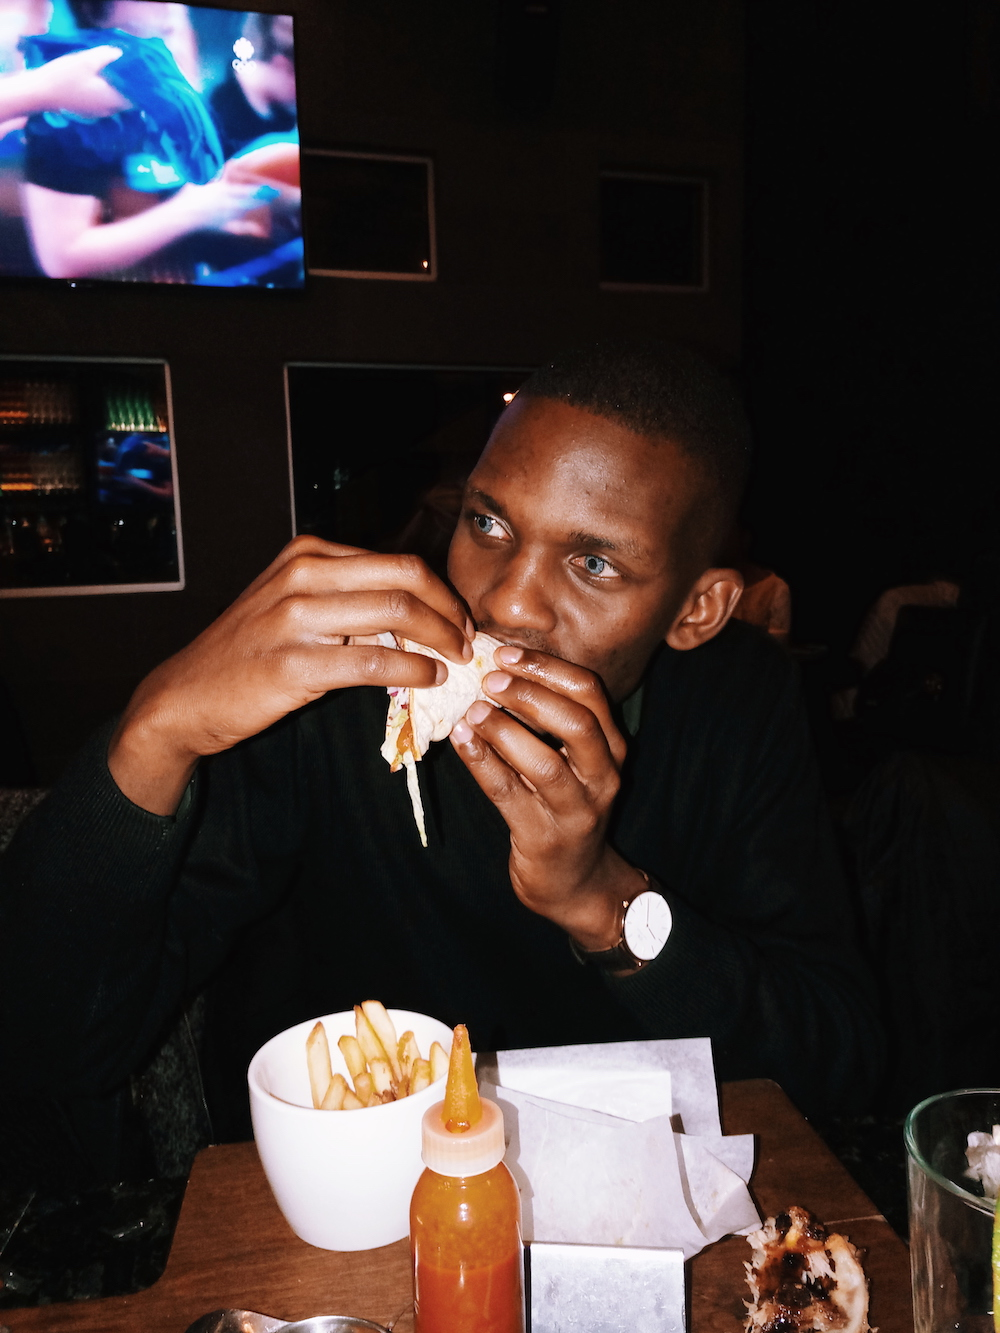 Fred Anyona | Foodie Exploring Moxie's